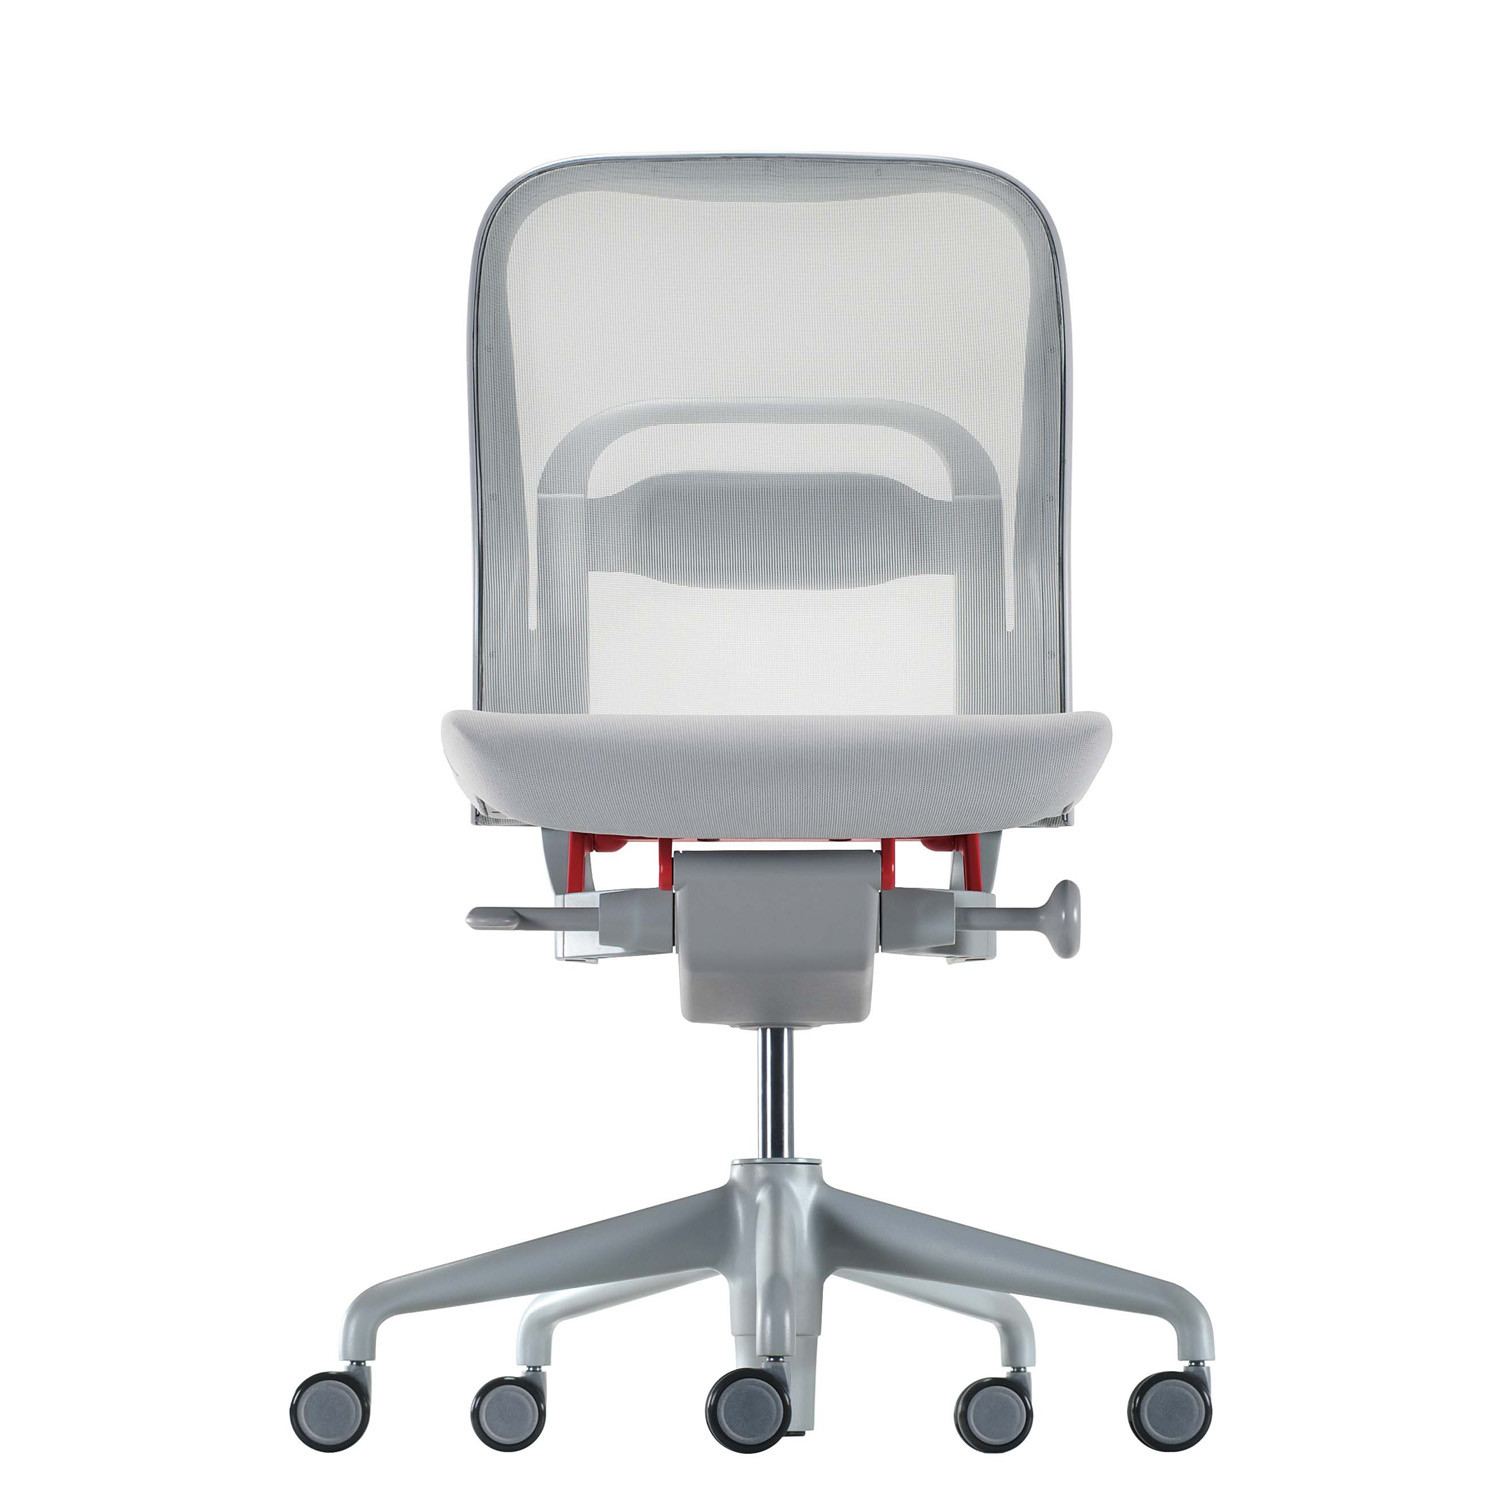 Norma Ergonomic Chair with Mesh Backrest